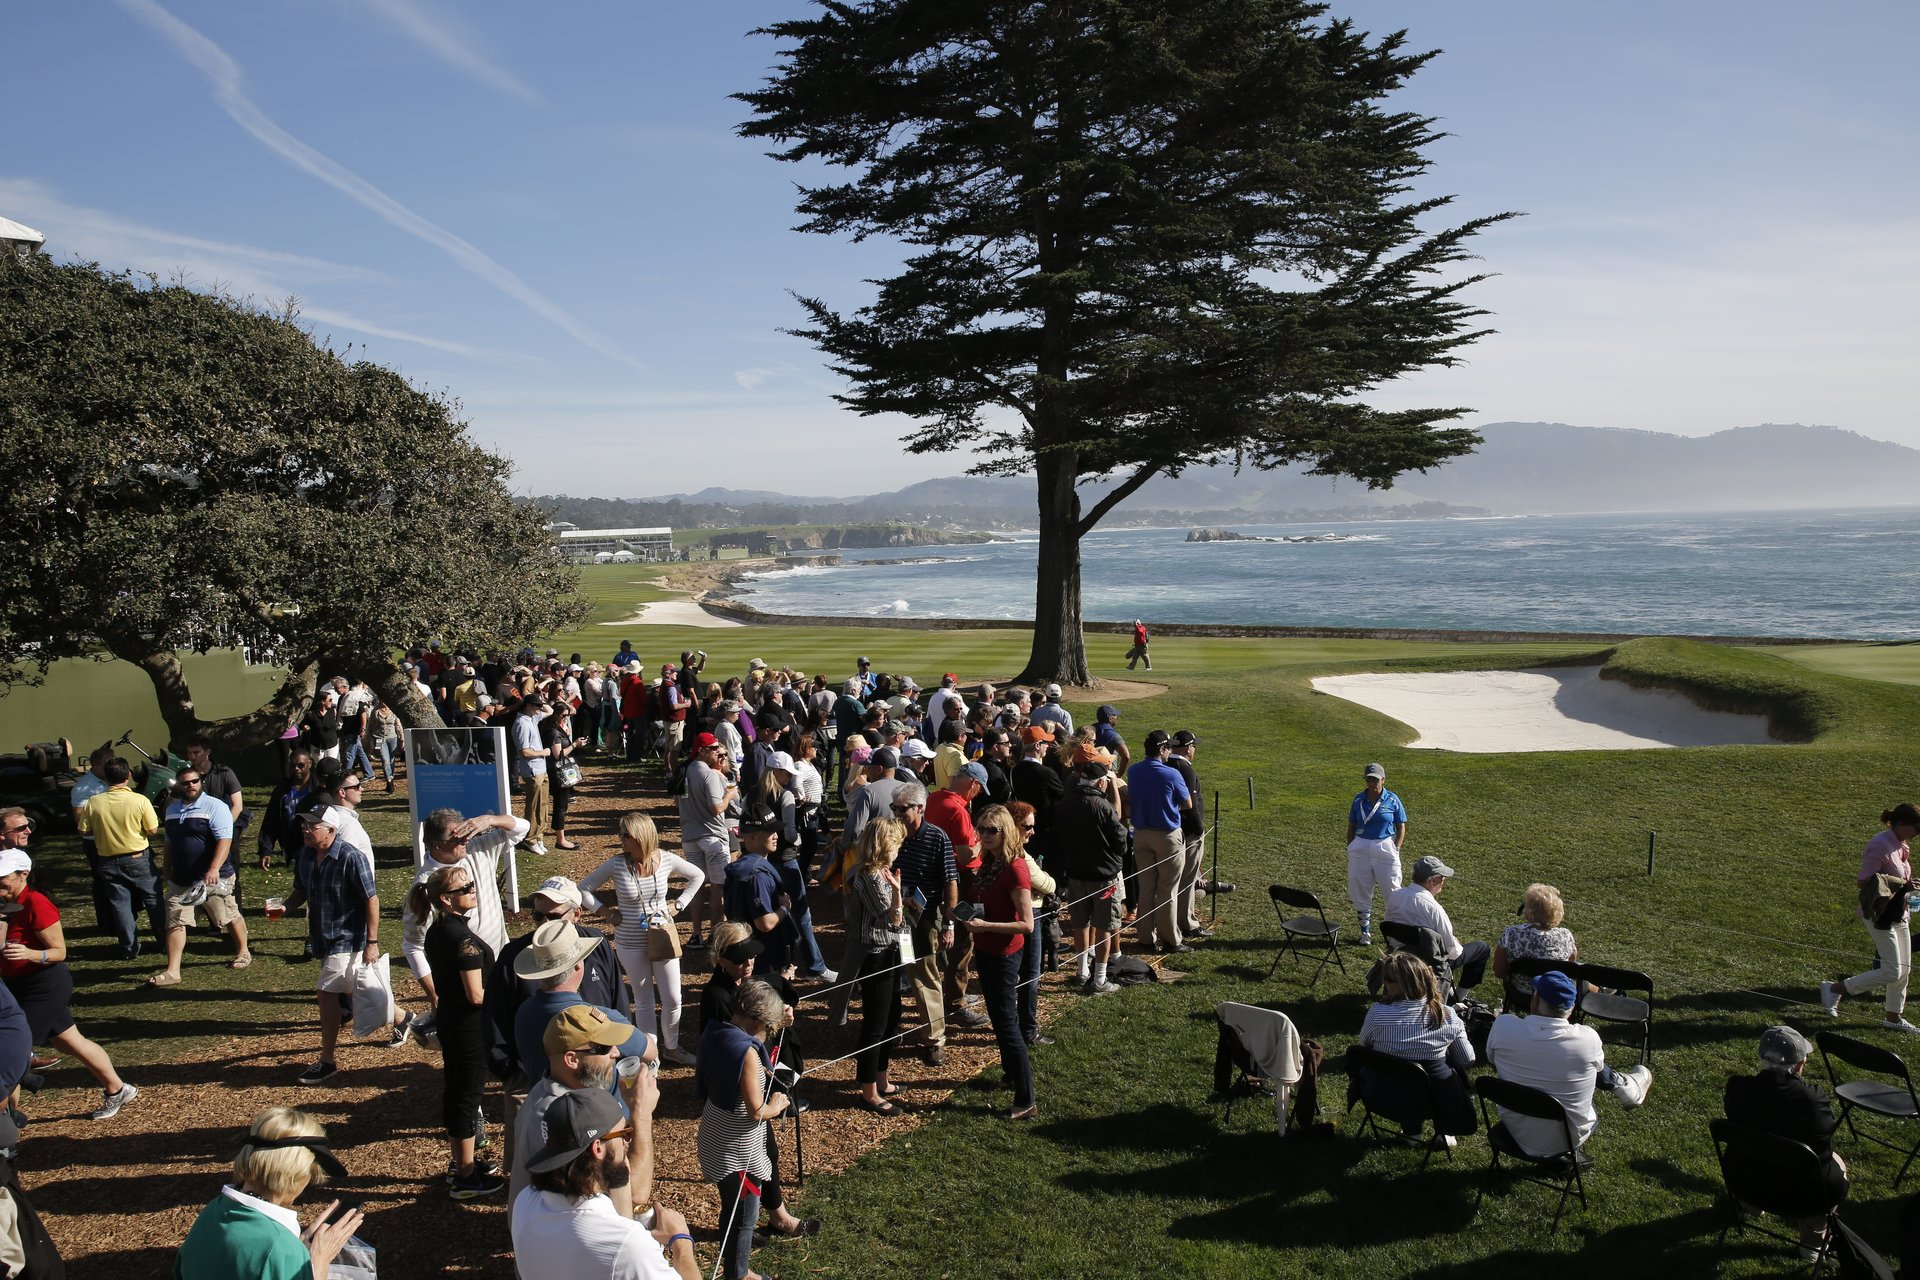 AT&T Pebble Beach Pro-Am in California - Best Season 2020